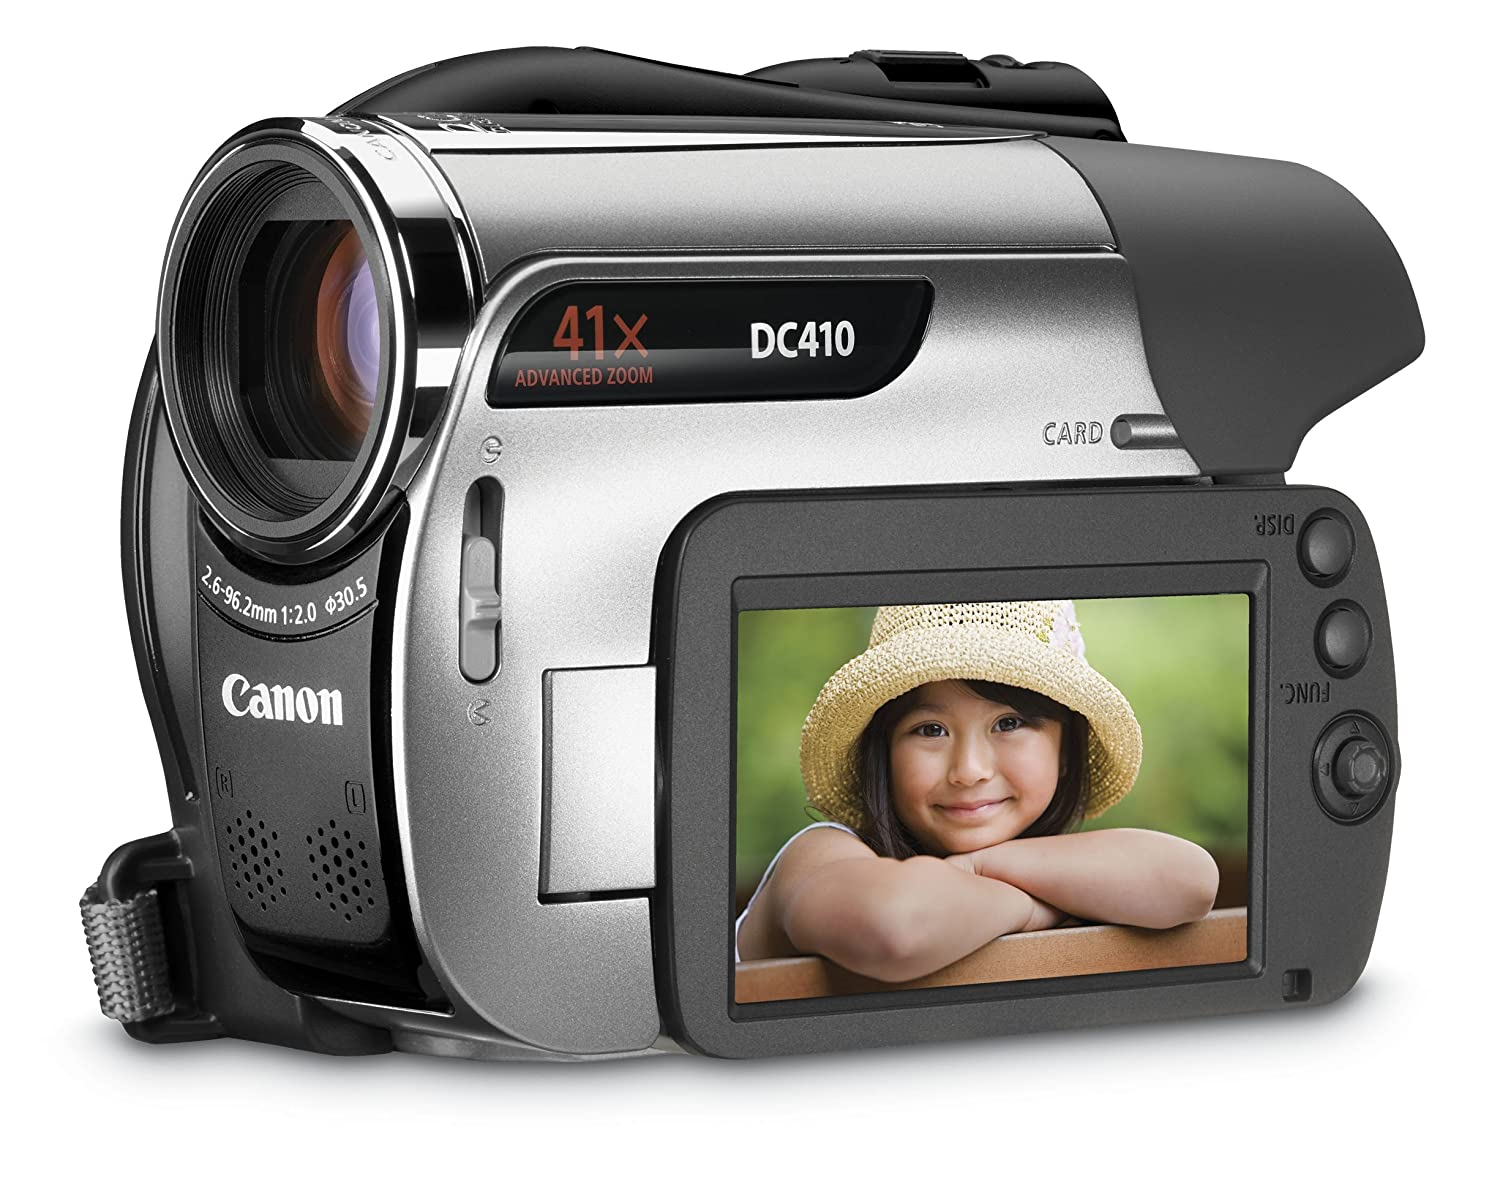 Amazon.com : Canon DC410 DVD Camcorder with 41x Optical Zoom : Dvd Digital  Camcorders : Camera & Photo